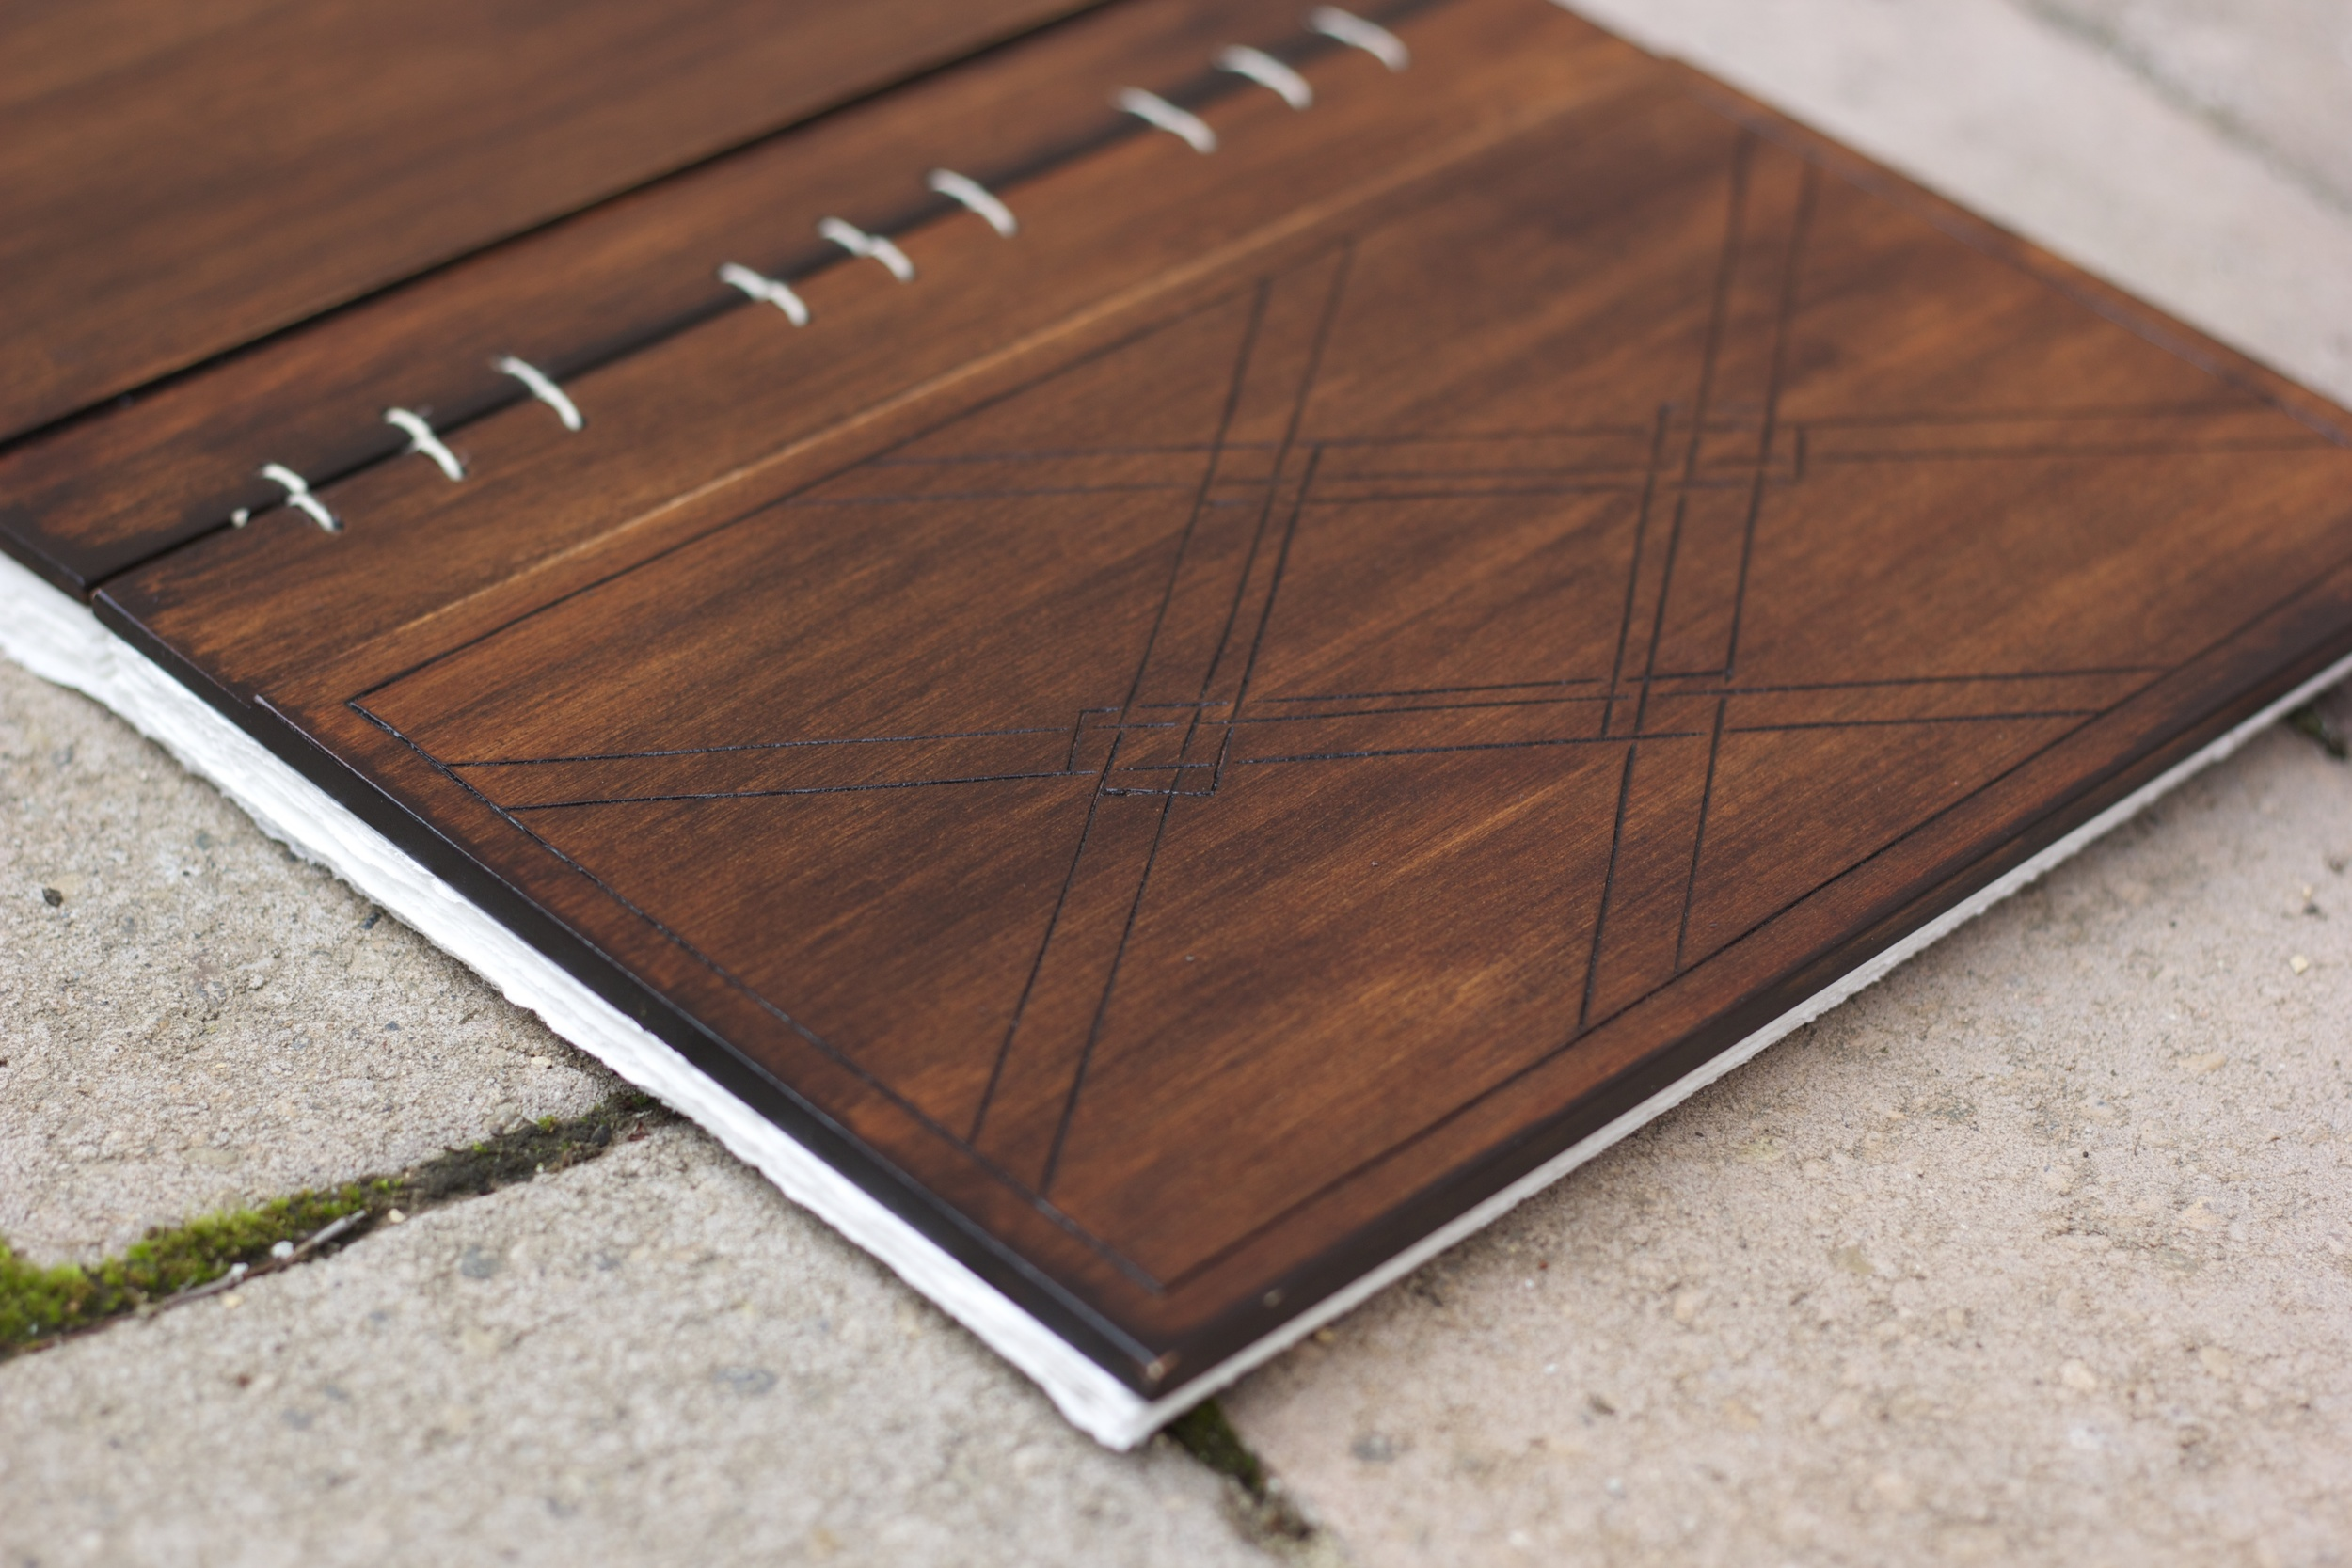 Kickstarter project. Wood-cover journal. Pyrography on front cover. 2013.